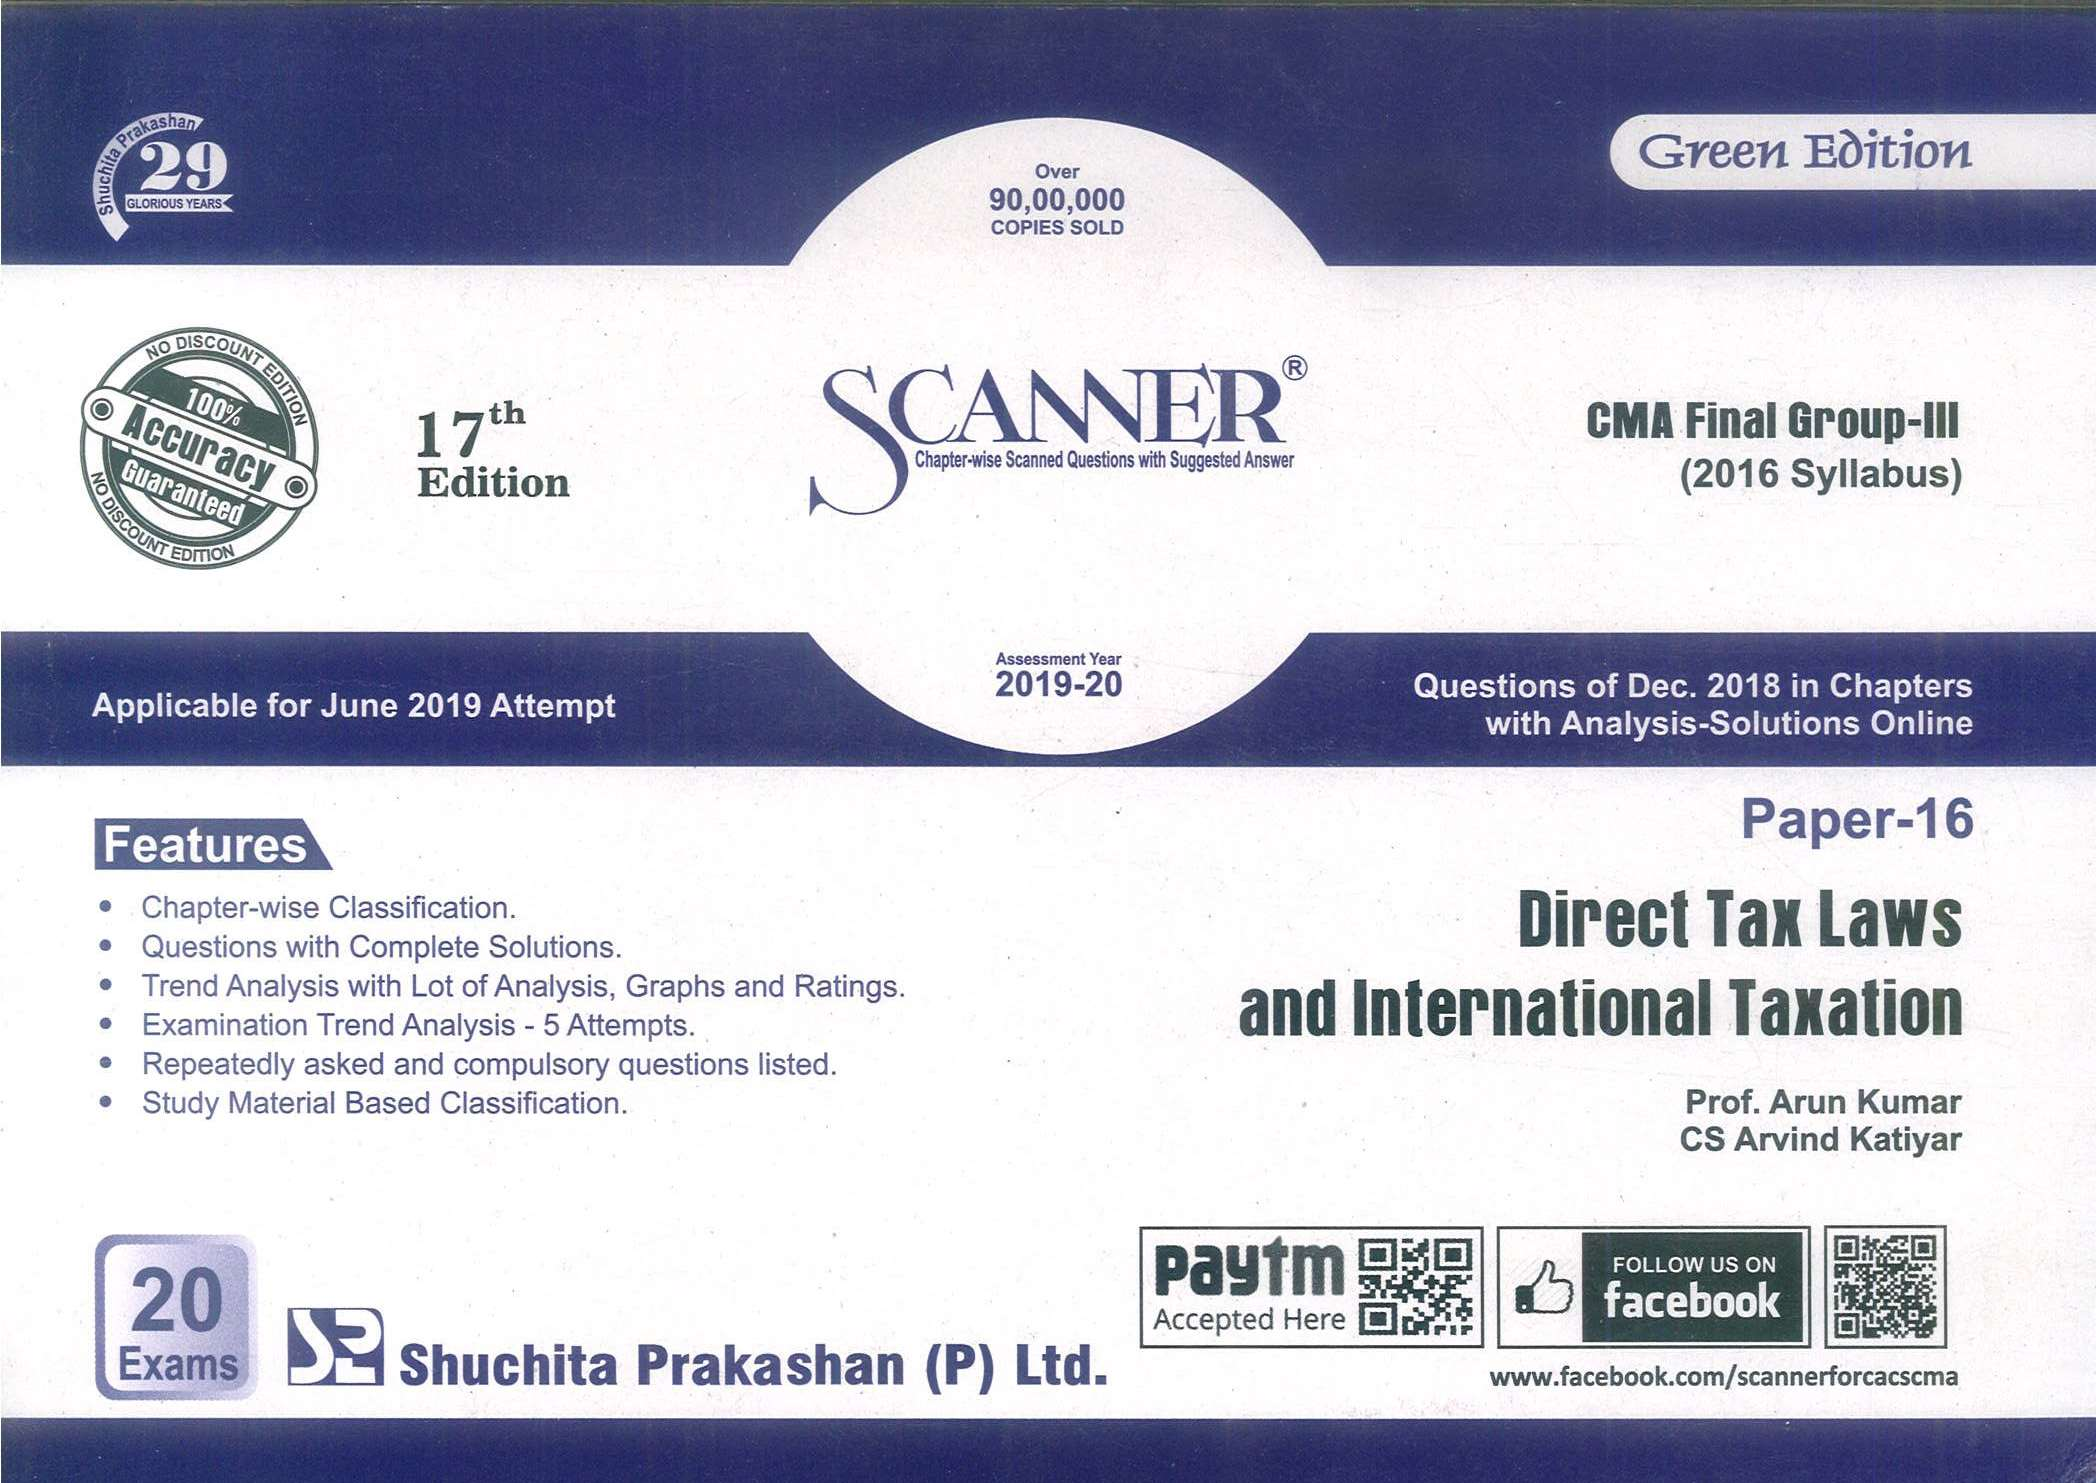 Shuchita Solved Scanner Direct Tax laws & International Taxation for CMA Final Group III Paper 16 New Syllabus for June 2019 Exam by Prof. Arun Kumar and CS CA Rajiv Singh (Shuchita Prakashan) 17th Edition 2018